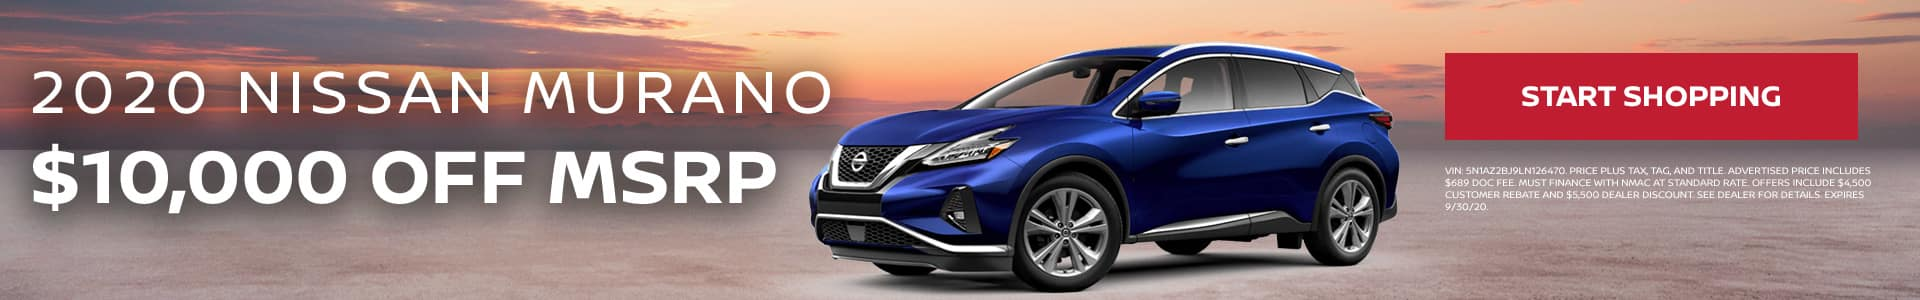 2020 Nissan Murano - $10,000 off MSRP